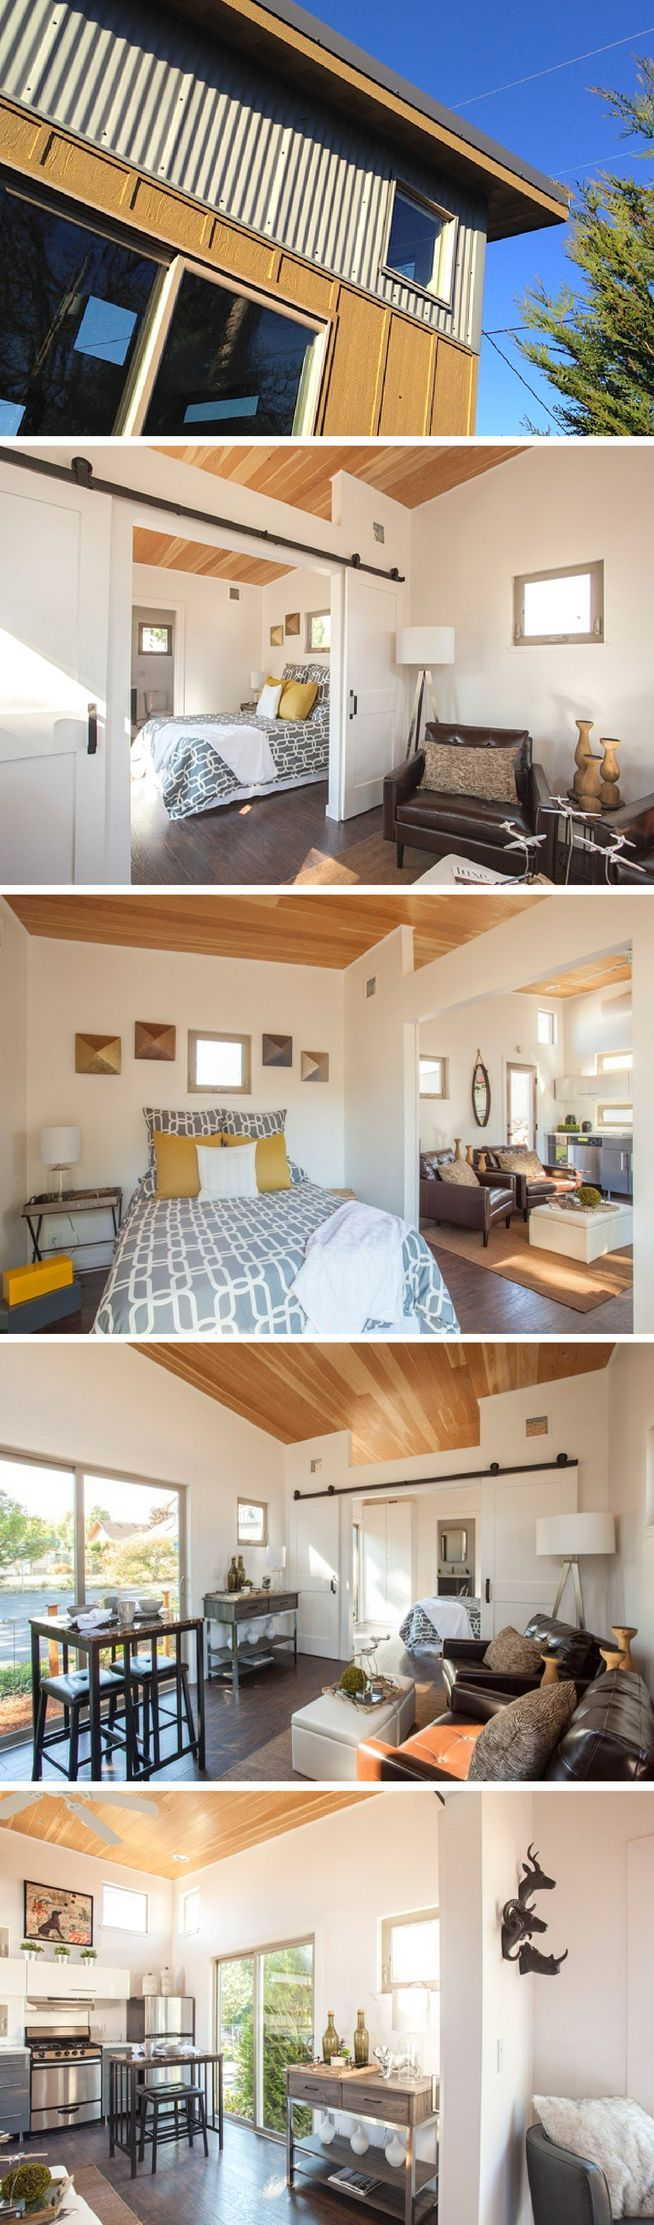 cool The Mini.Box: a 400 sq ft home from IdeaBox with a stunning layout.... by http://www.danazhome-decor.xyz/tiny-homes/the-mini-box-a-400-sq-ft-home-from-ideabox-with-a-stunning-layout/